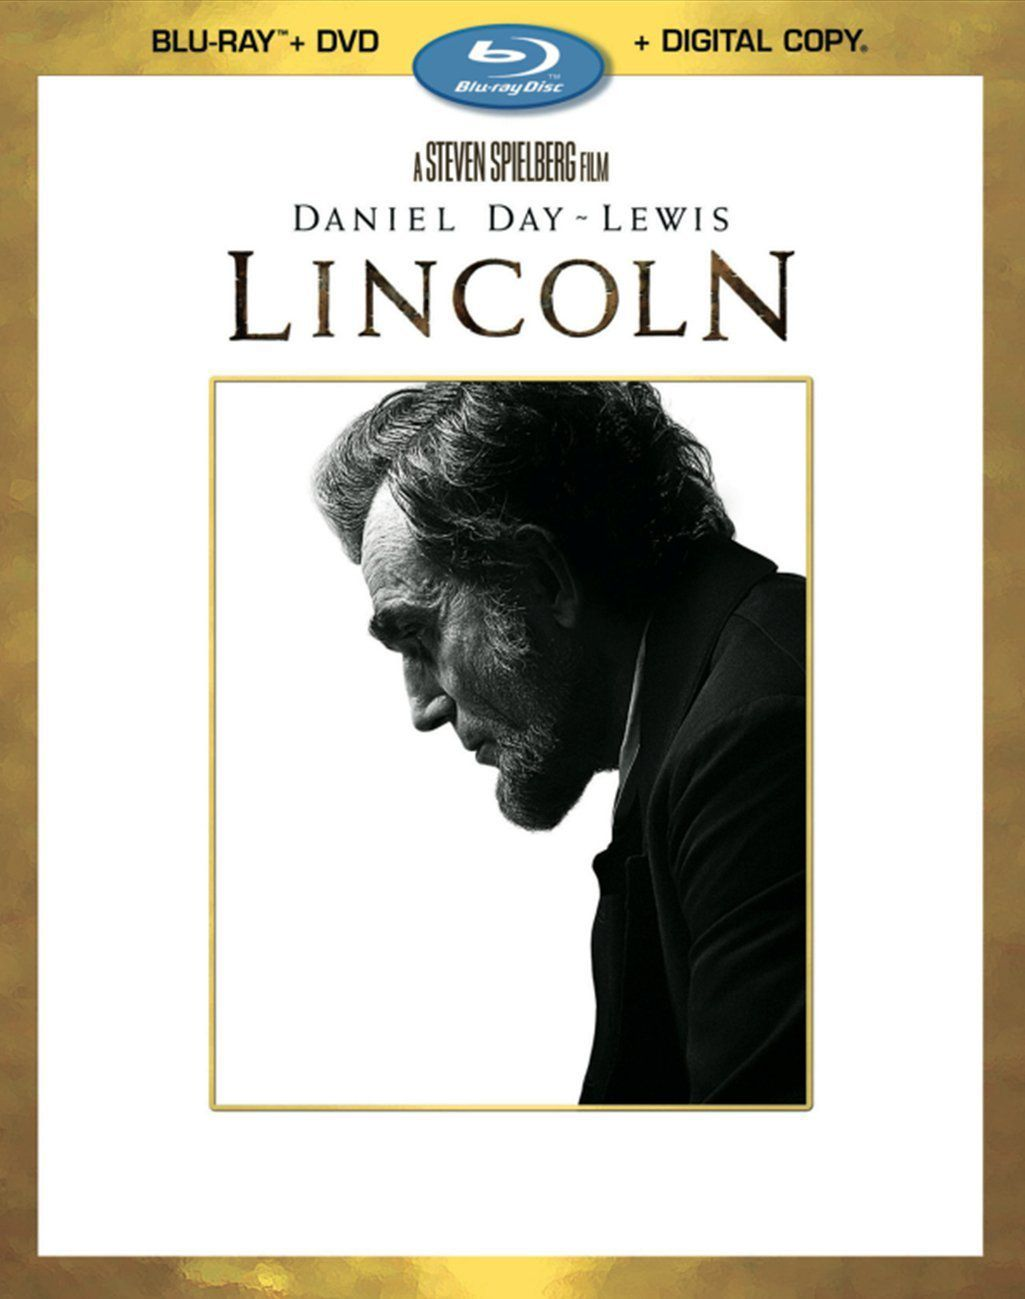 Publicity still for Lincoln